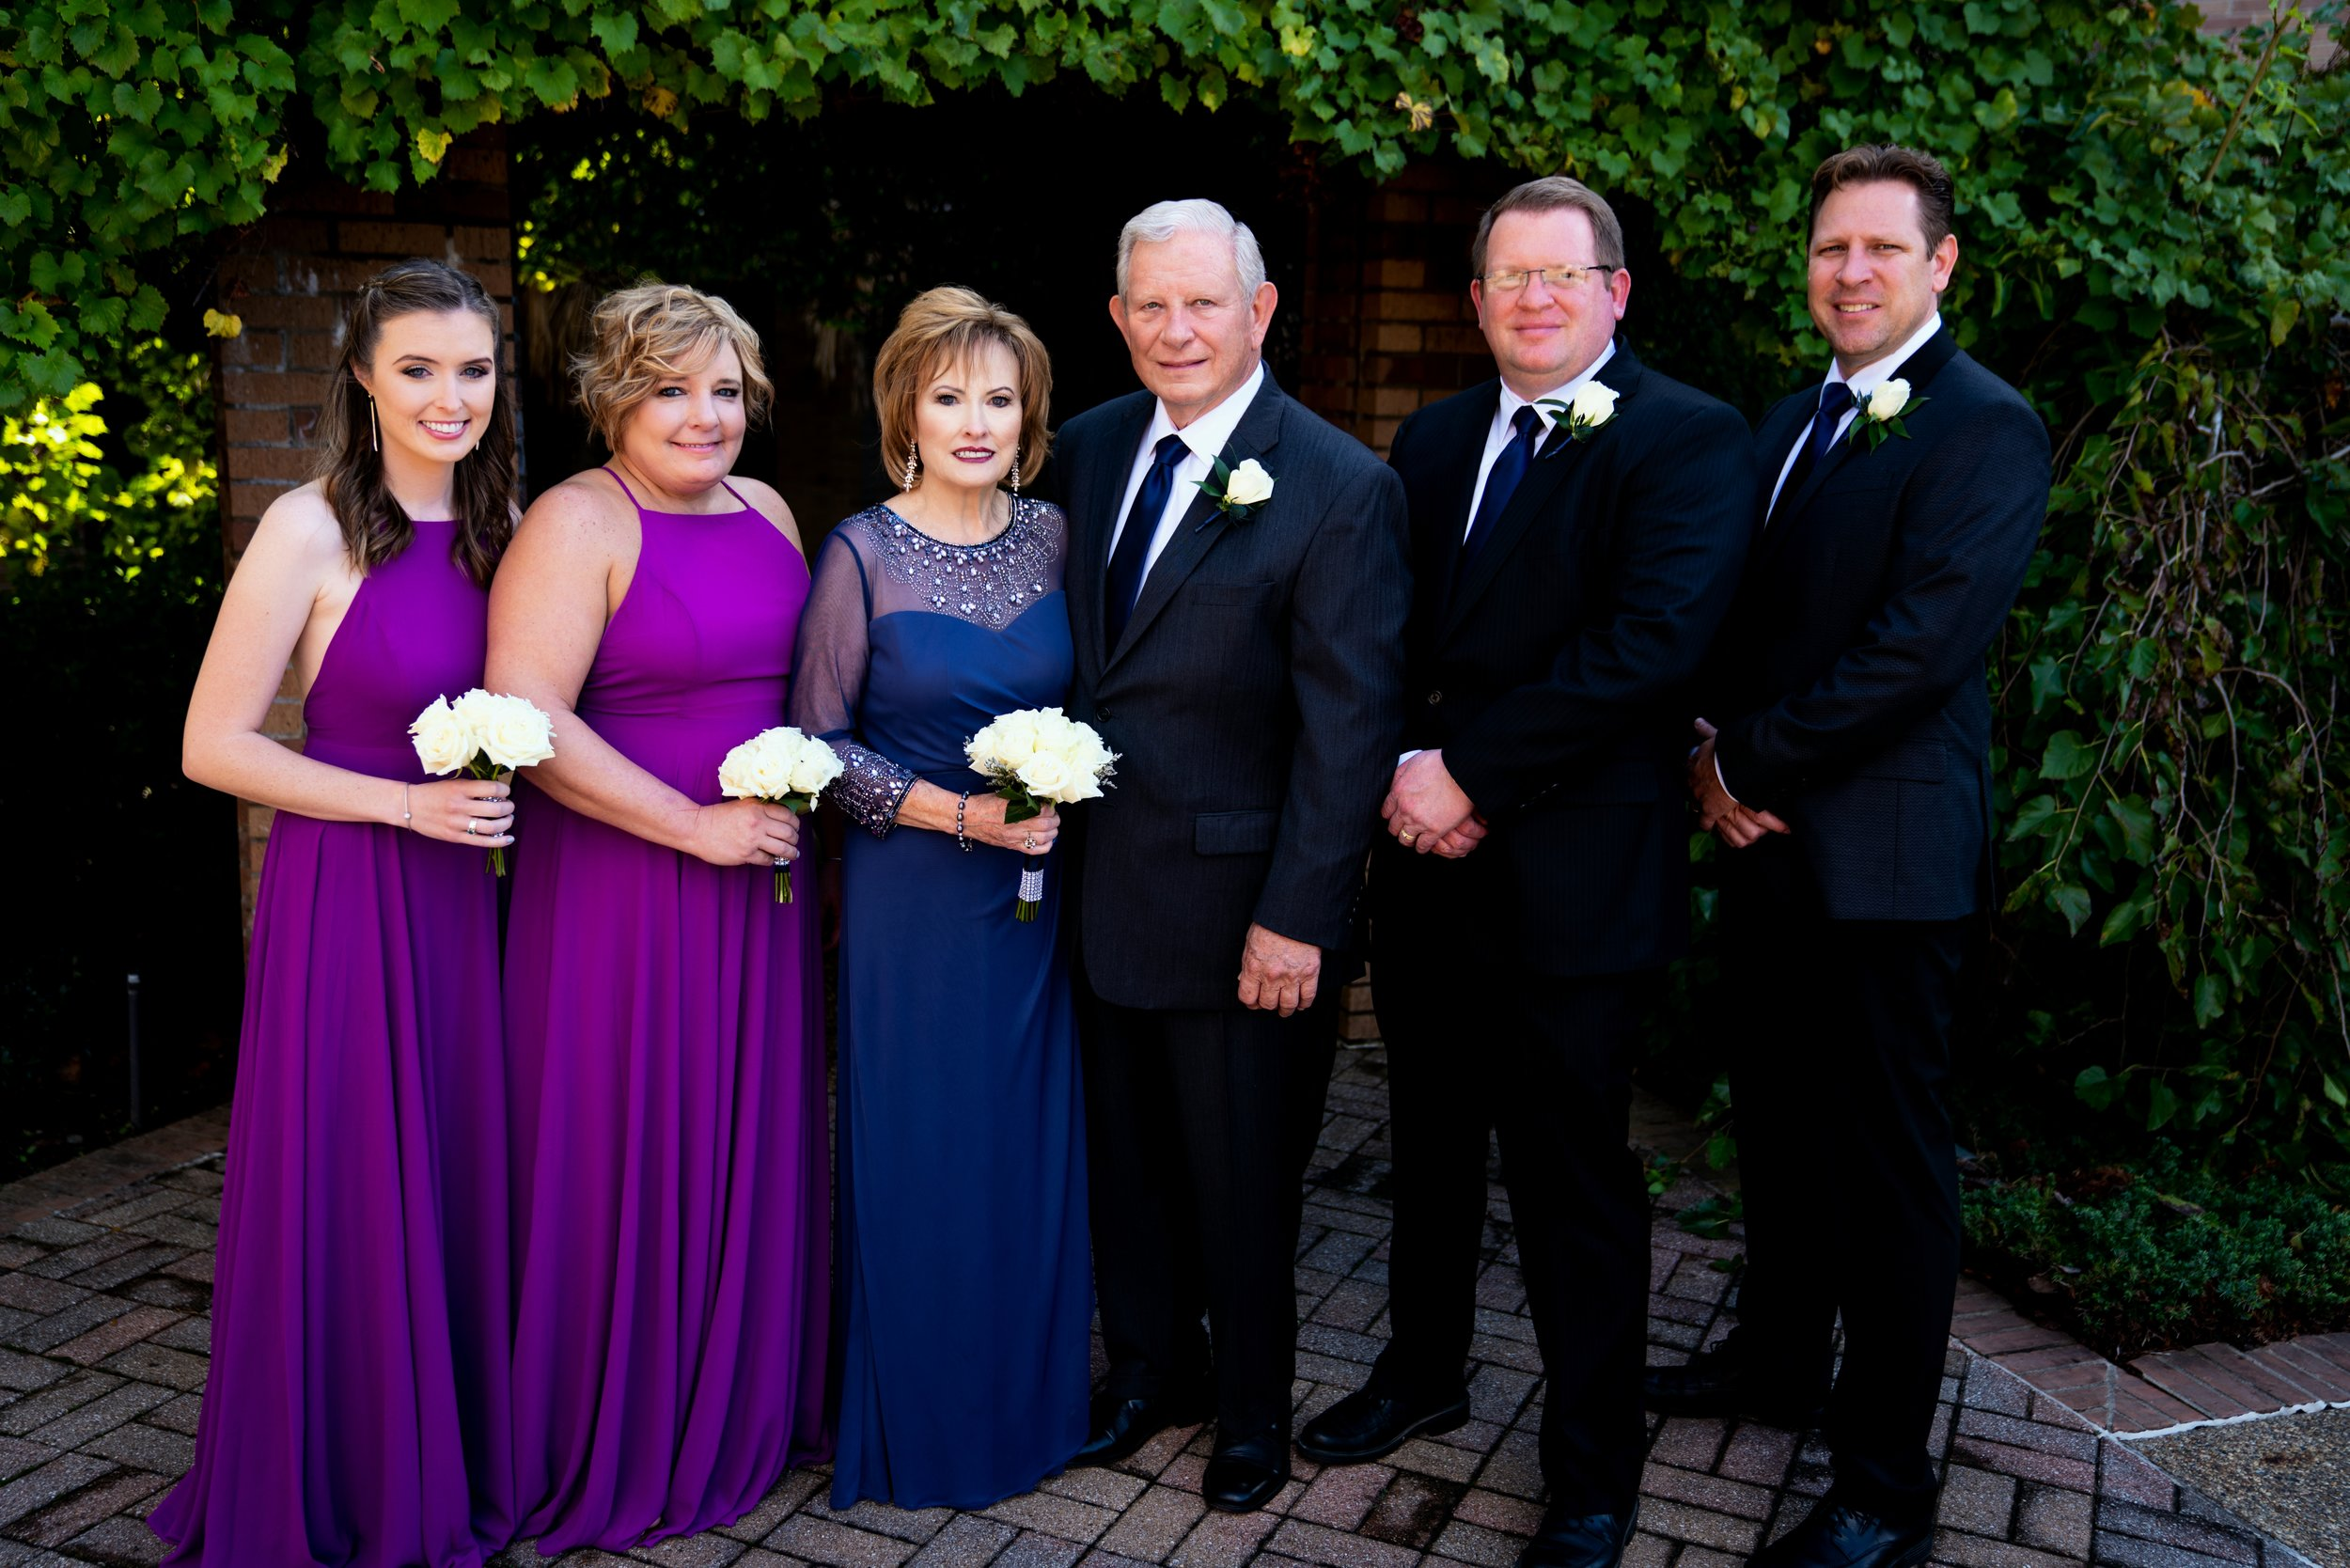 Vee and Ron on their wedding day, October 20, 2018, with Bentleigh Barnett (Vee's granddaughter), Leigh Barnett (Vee's daughter), John Collins (Ron's son), and Aaron Collins (Ron's son). (Photo by Bryan Jefferies – Fresh Focus Films)